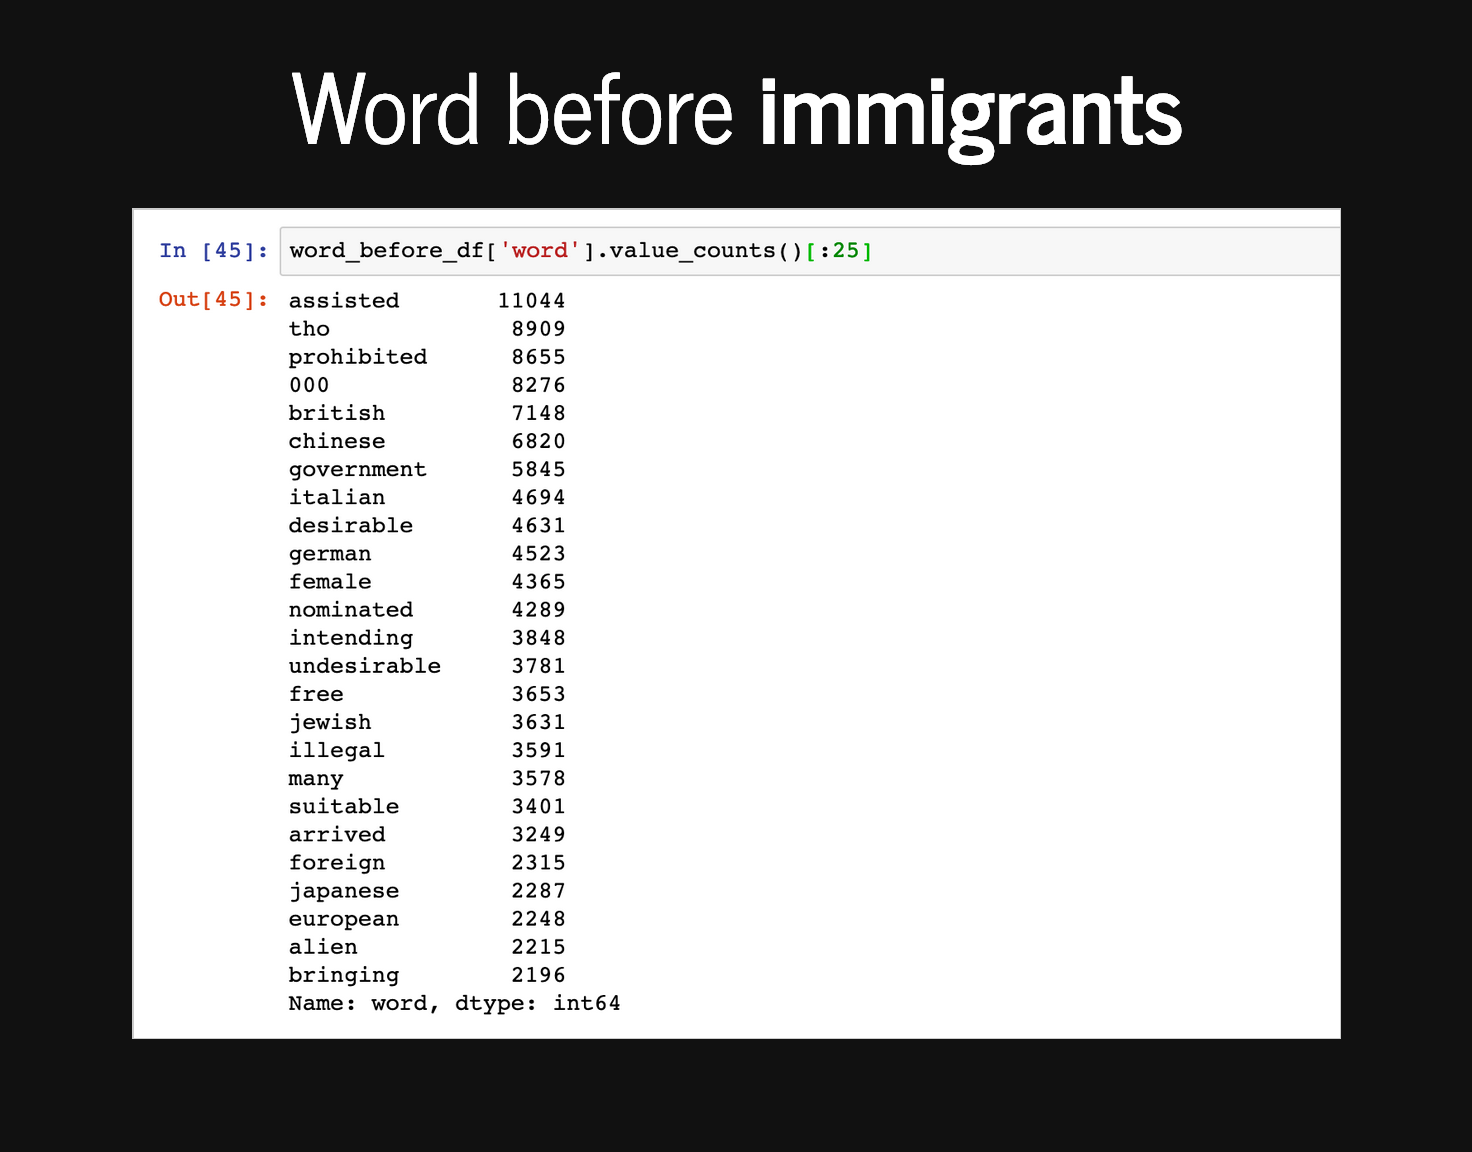 List of words appearing before immigrants by frequency